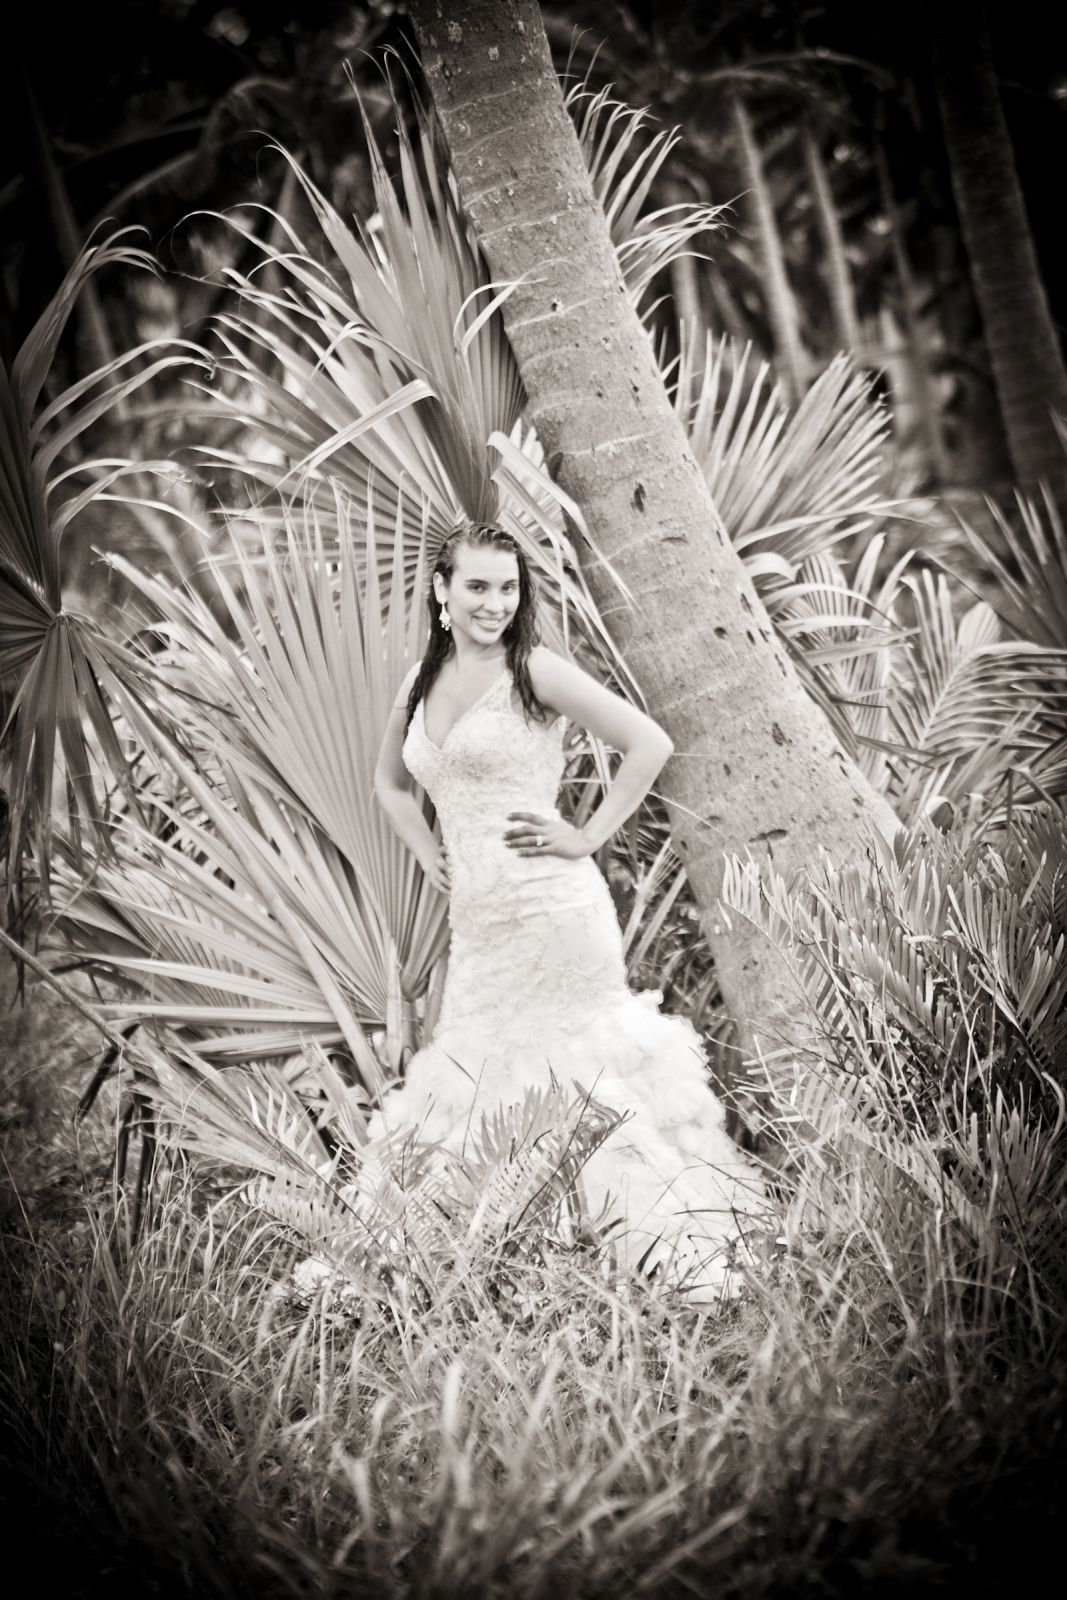 Just the bride in black and white